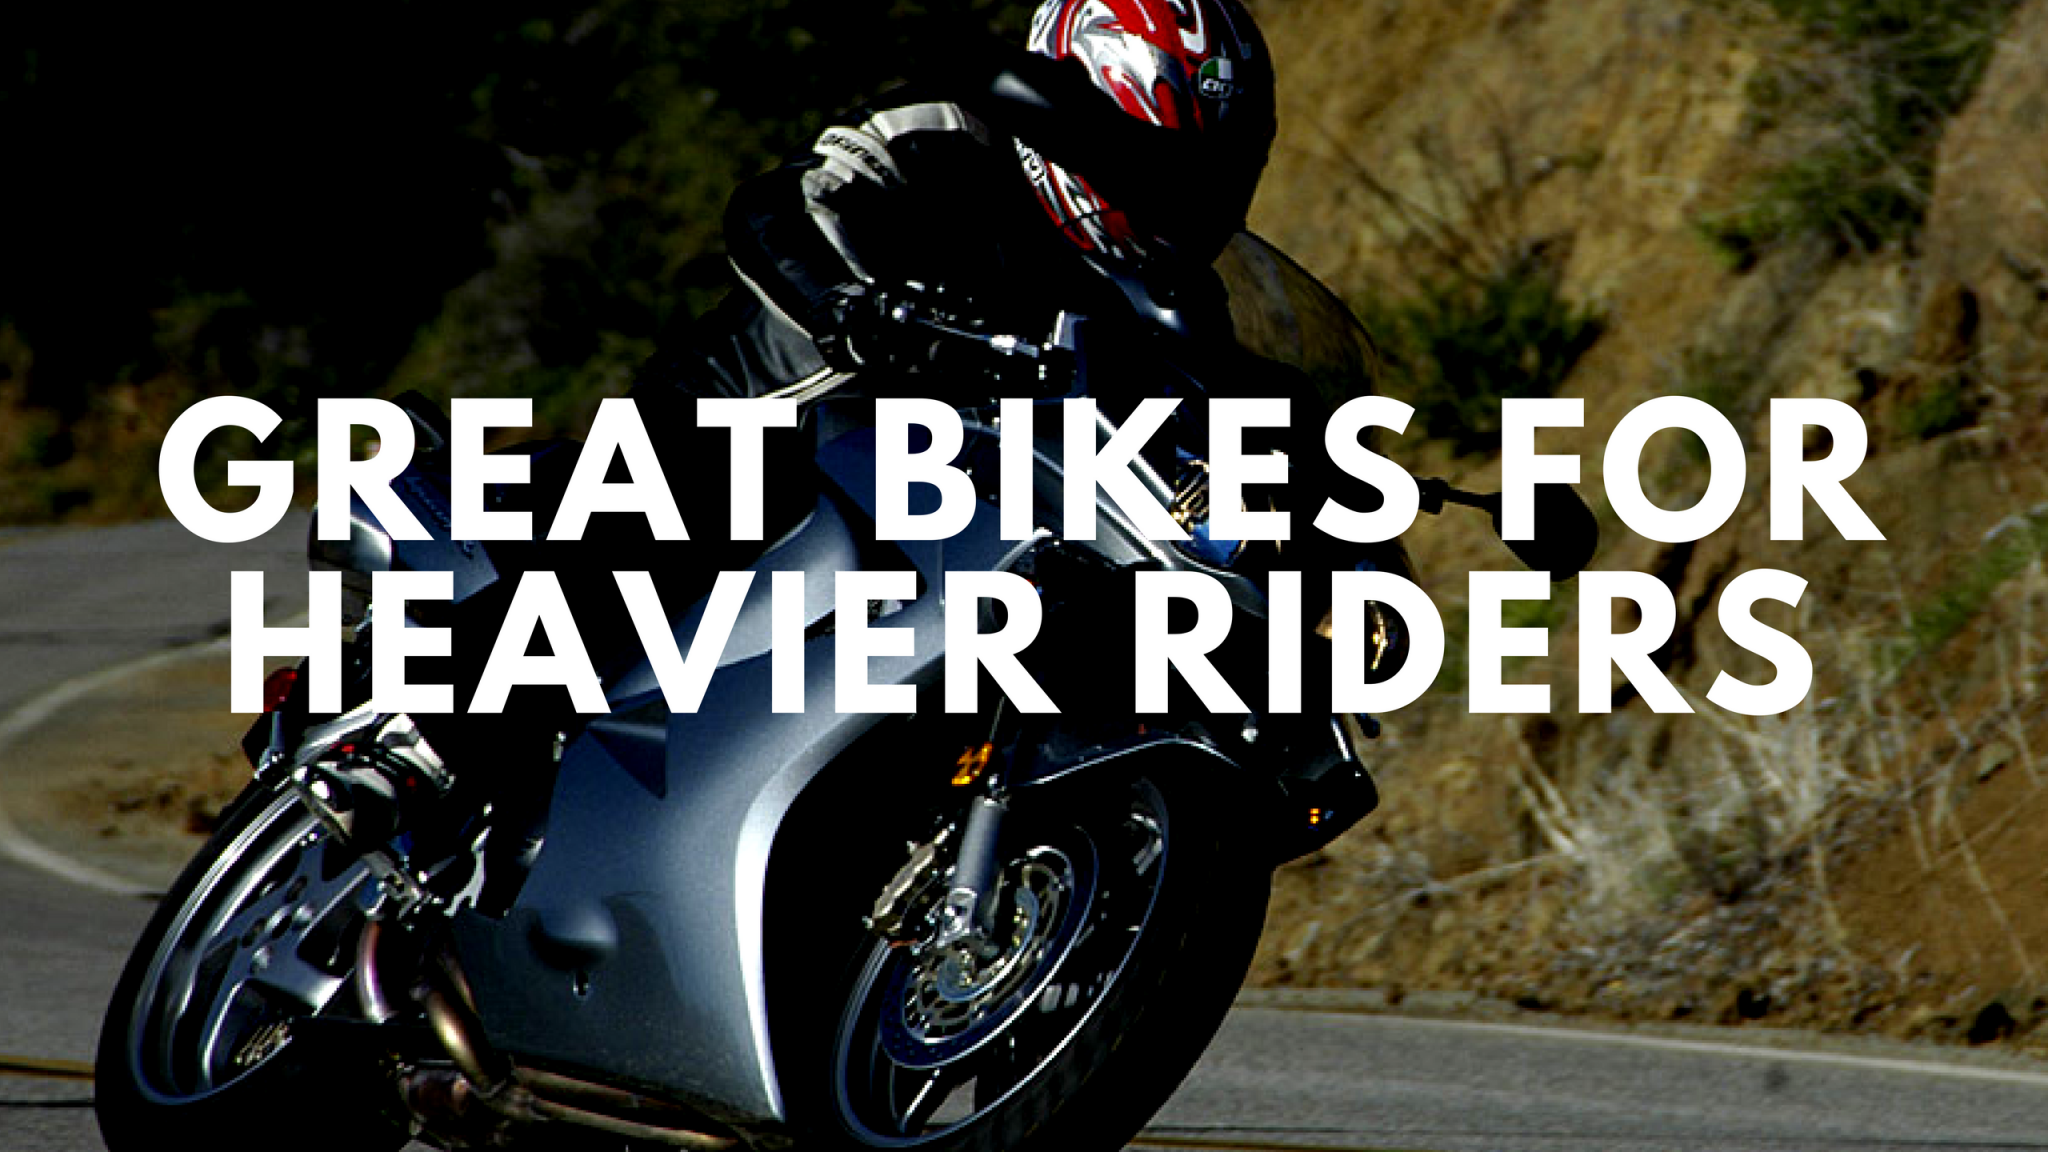 Great Bikes for Heavier Riders